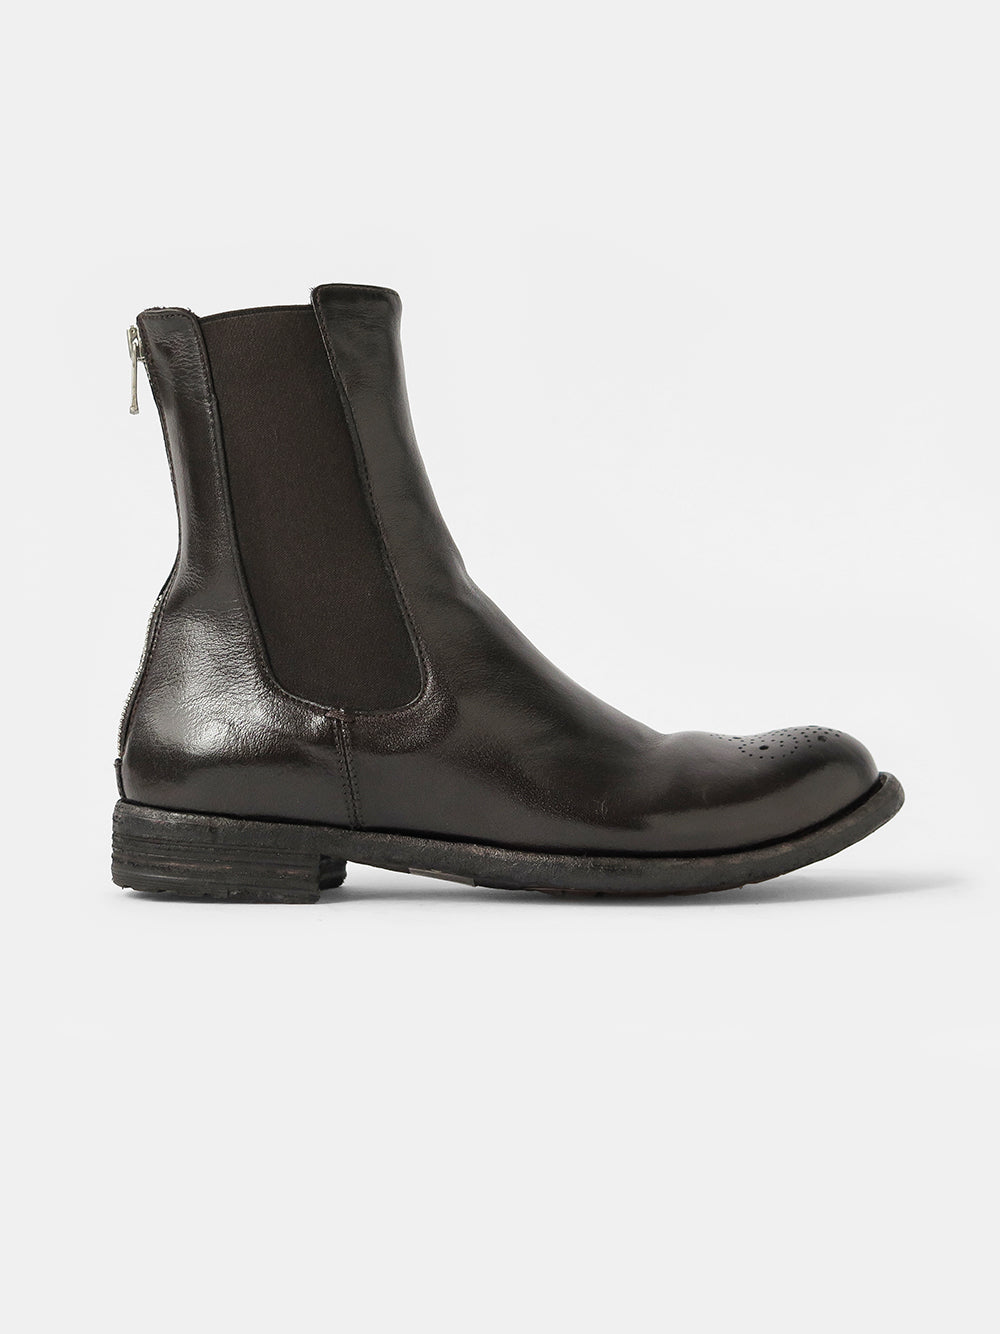 officine creative lexikon boot in ebano